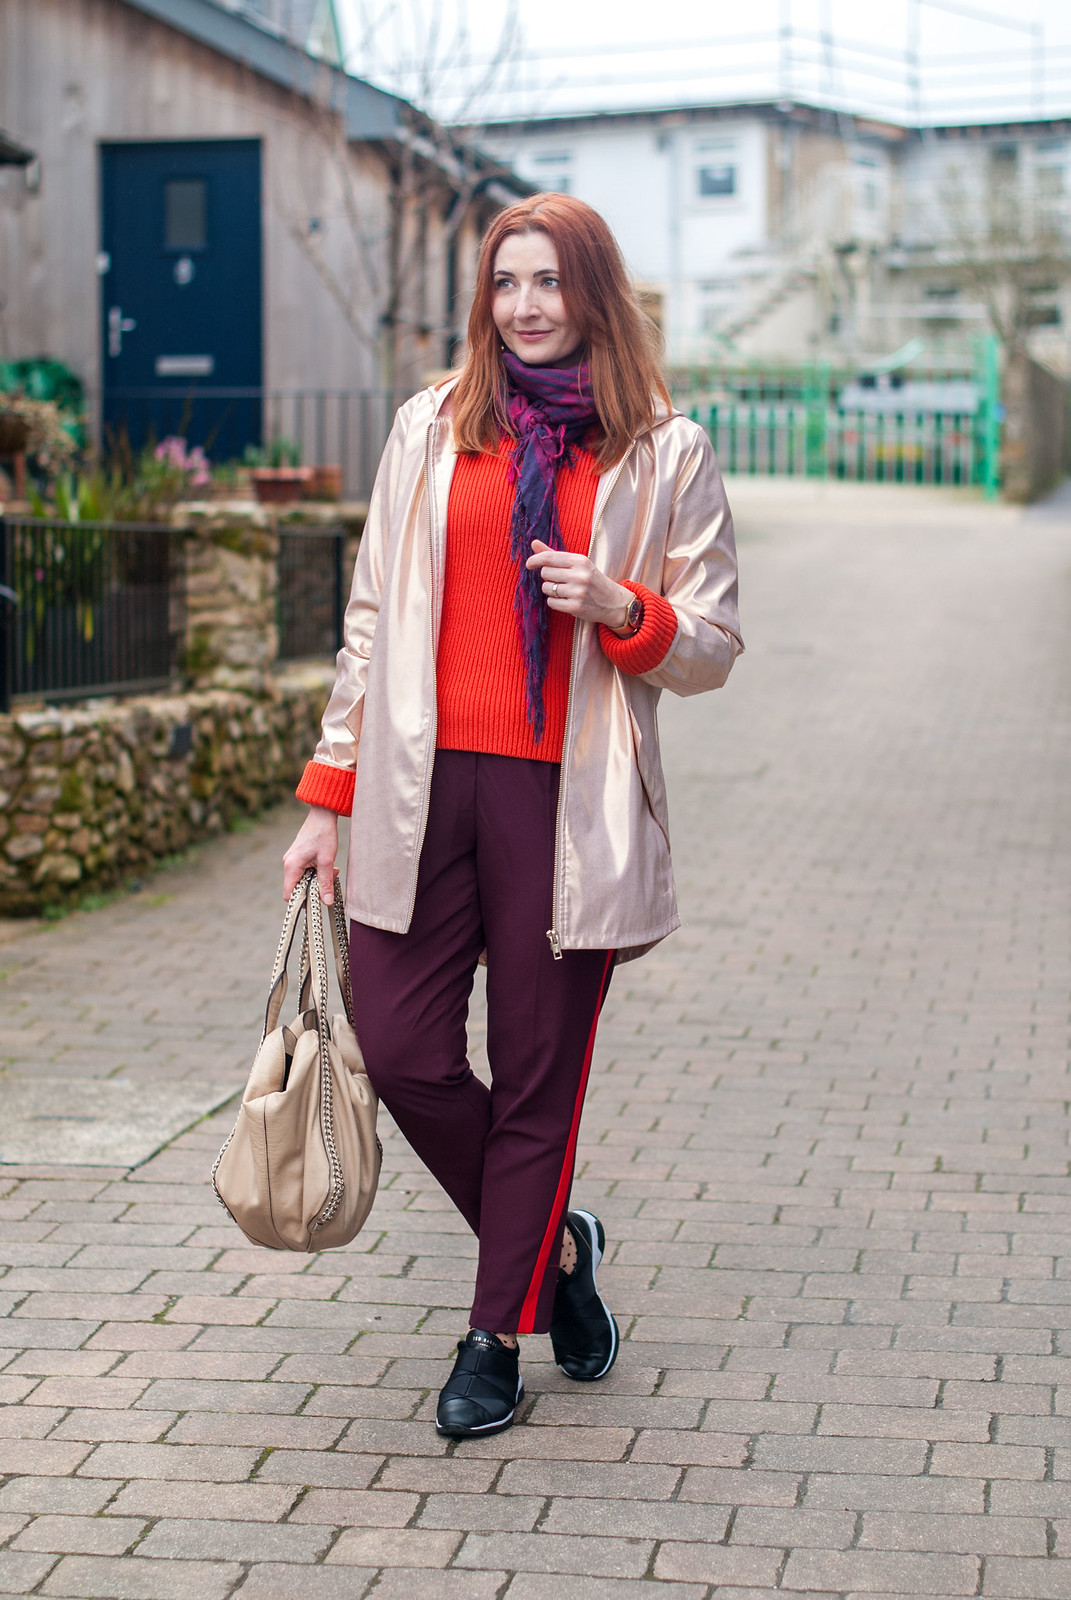 Beating April Showers in Metallics and Warm Colours \ rose gold raincoat \ orange-red sweater \ burgundy and red stripe trousers pants \ Ted Baker Queane trainers sneakers \ polka dot socks | Not Dressed As Lamb, over 40 style